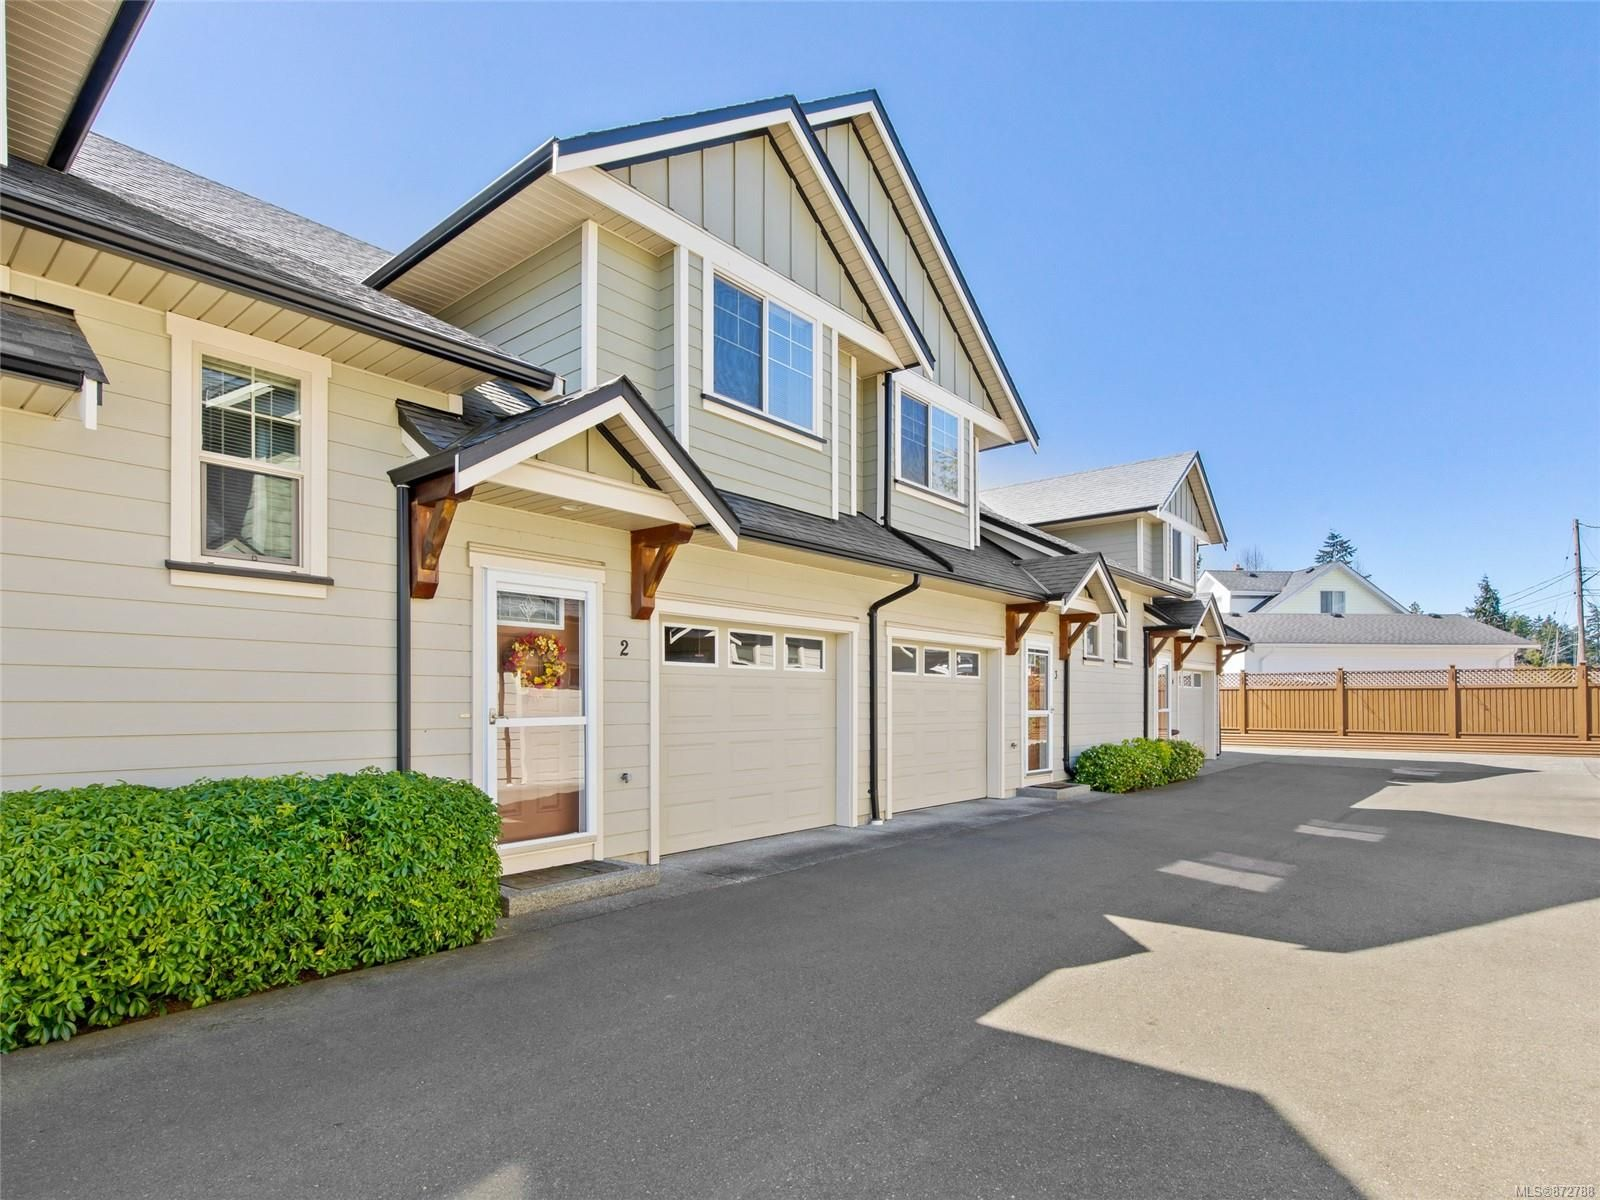 Main Photo: 2 341 BLOWER Rd in : PQ Parksville Row/Townhouse for sale (Parksville/Qualicum)  : MLS®# 872788